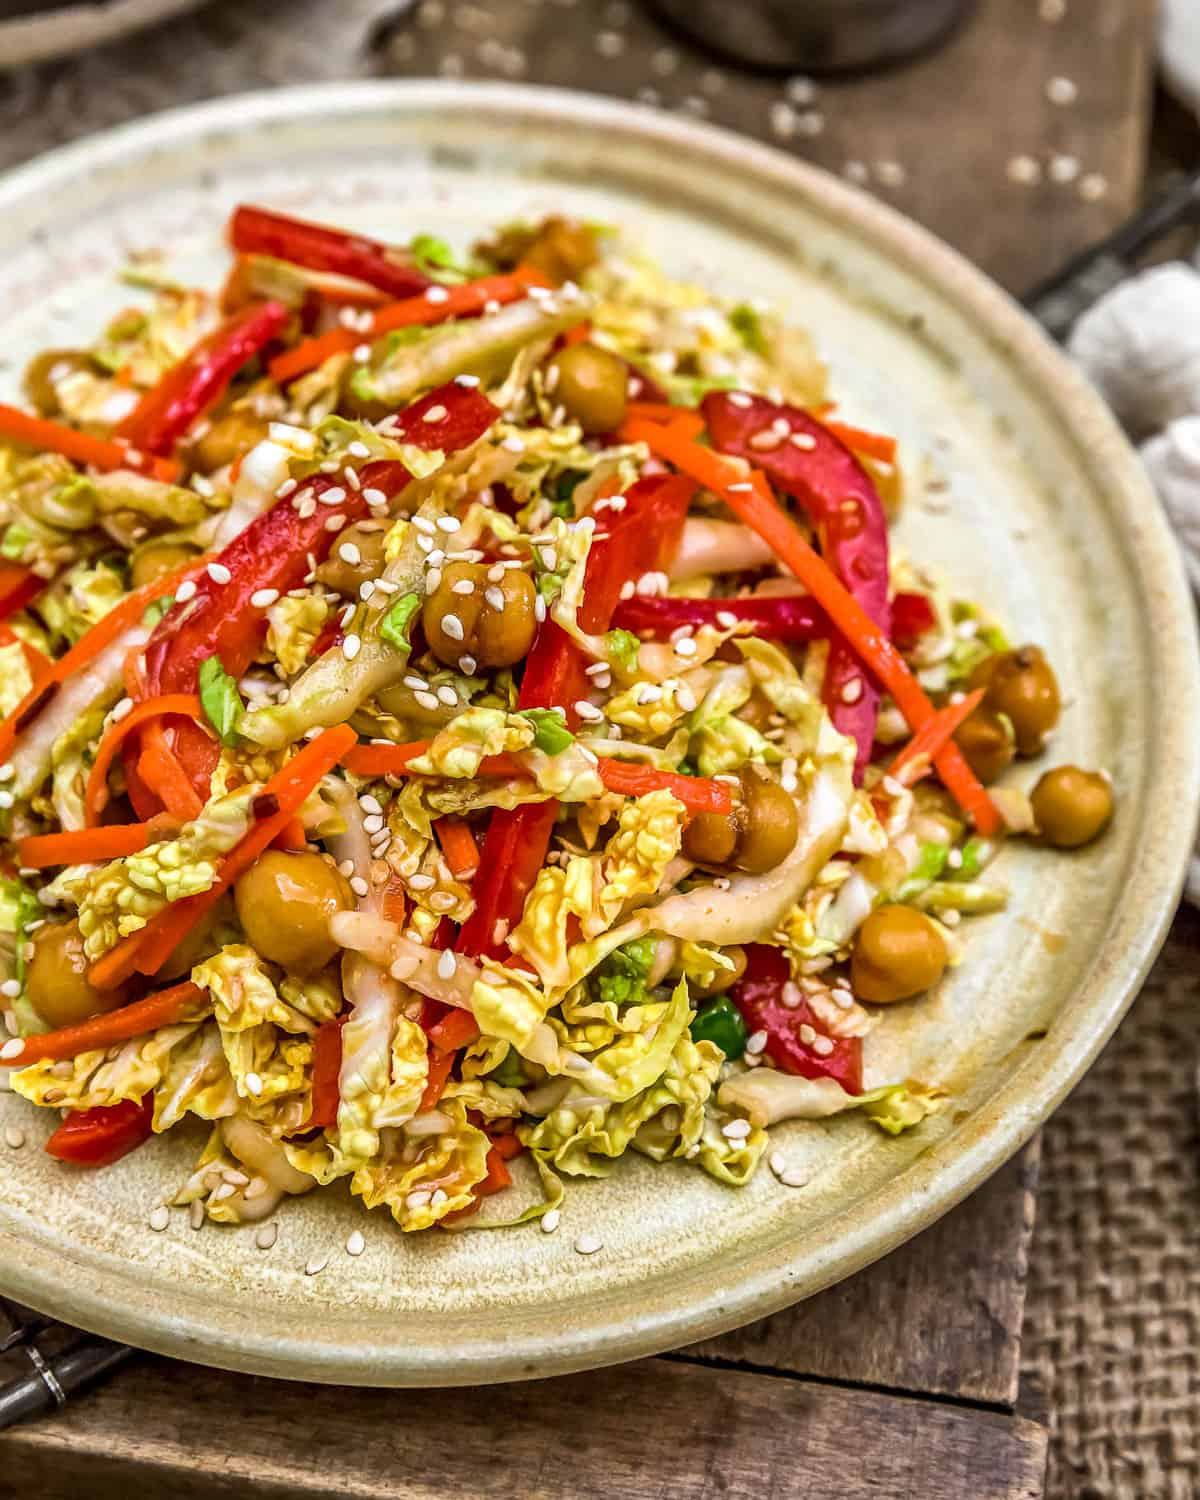 Plated Spicy Glazed Chickpea Napa Cabbage Salad